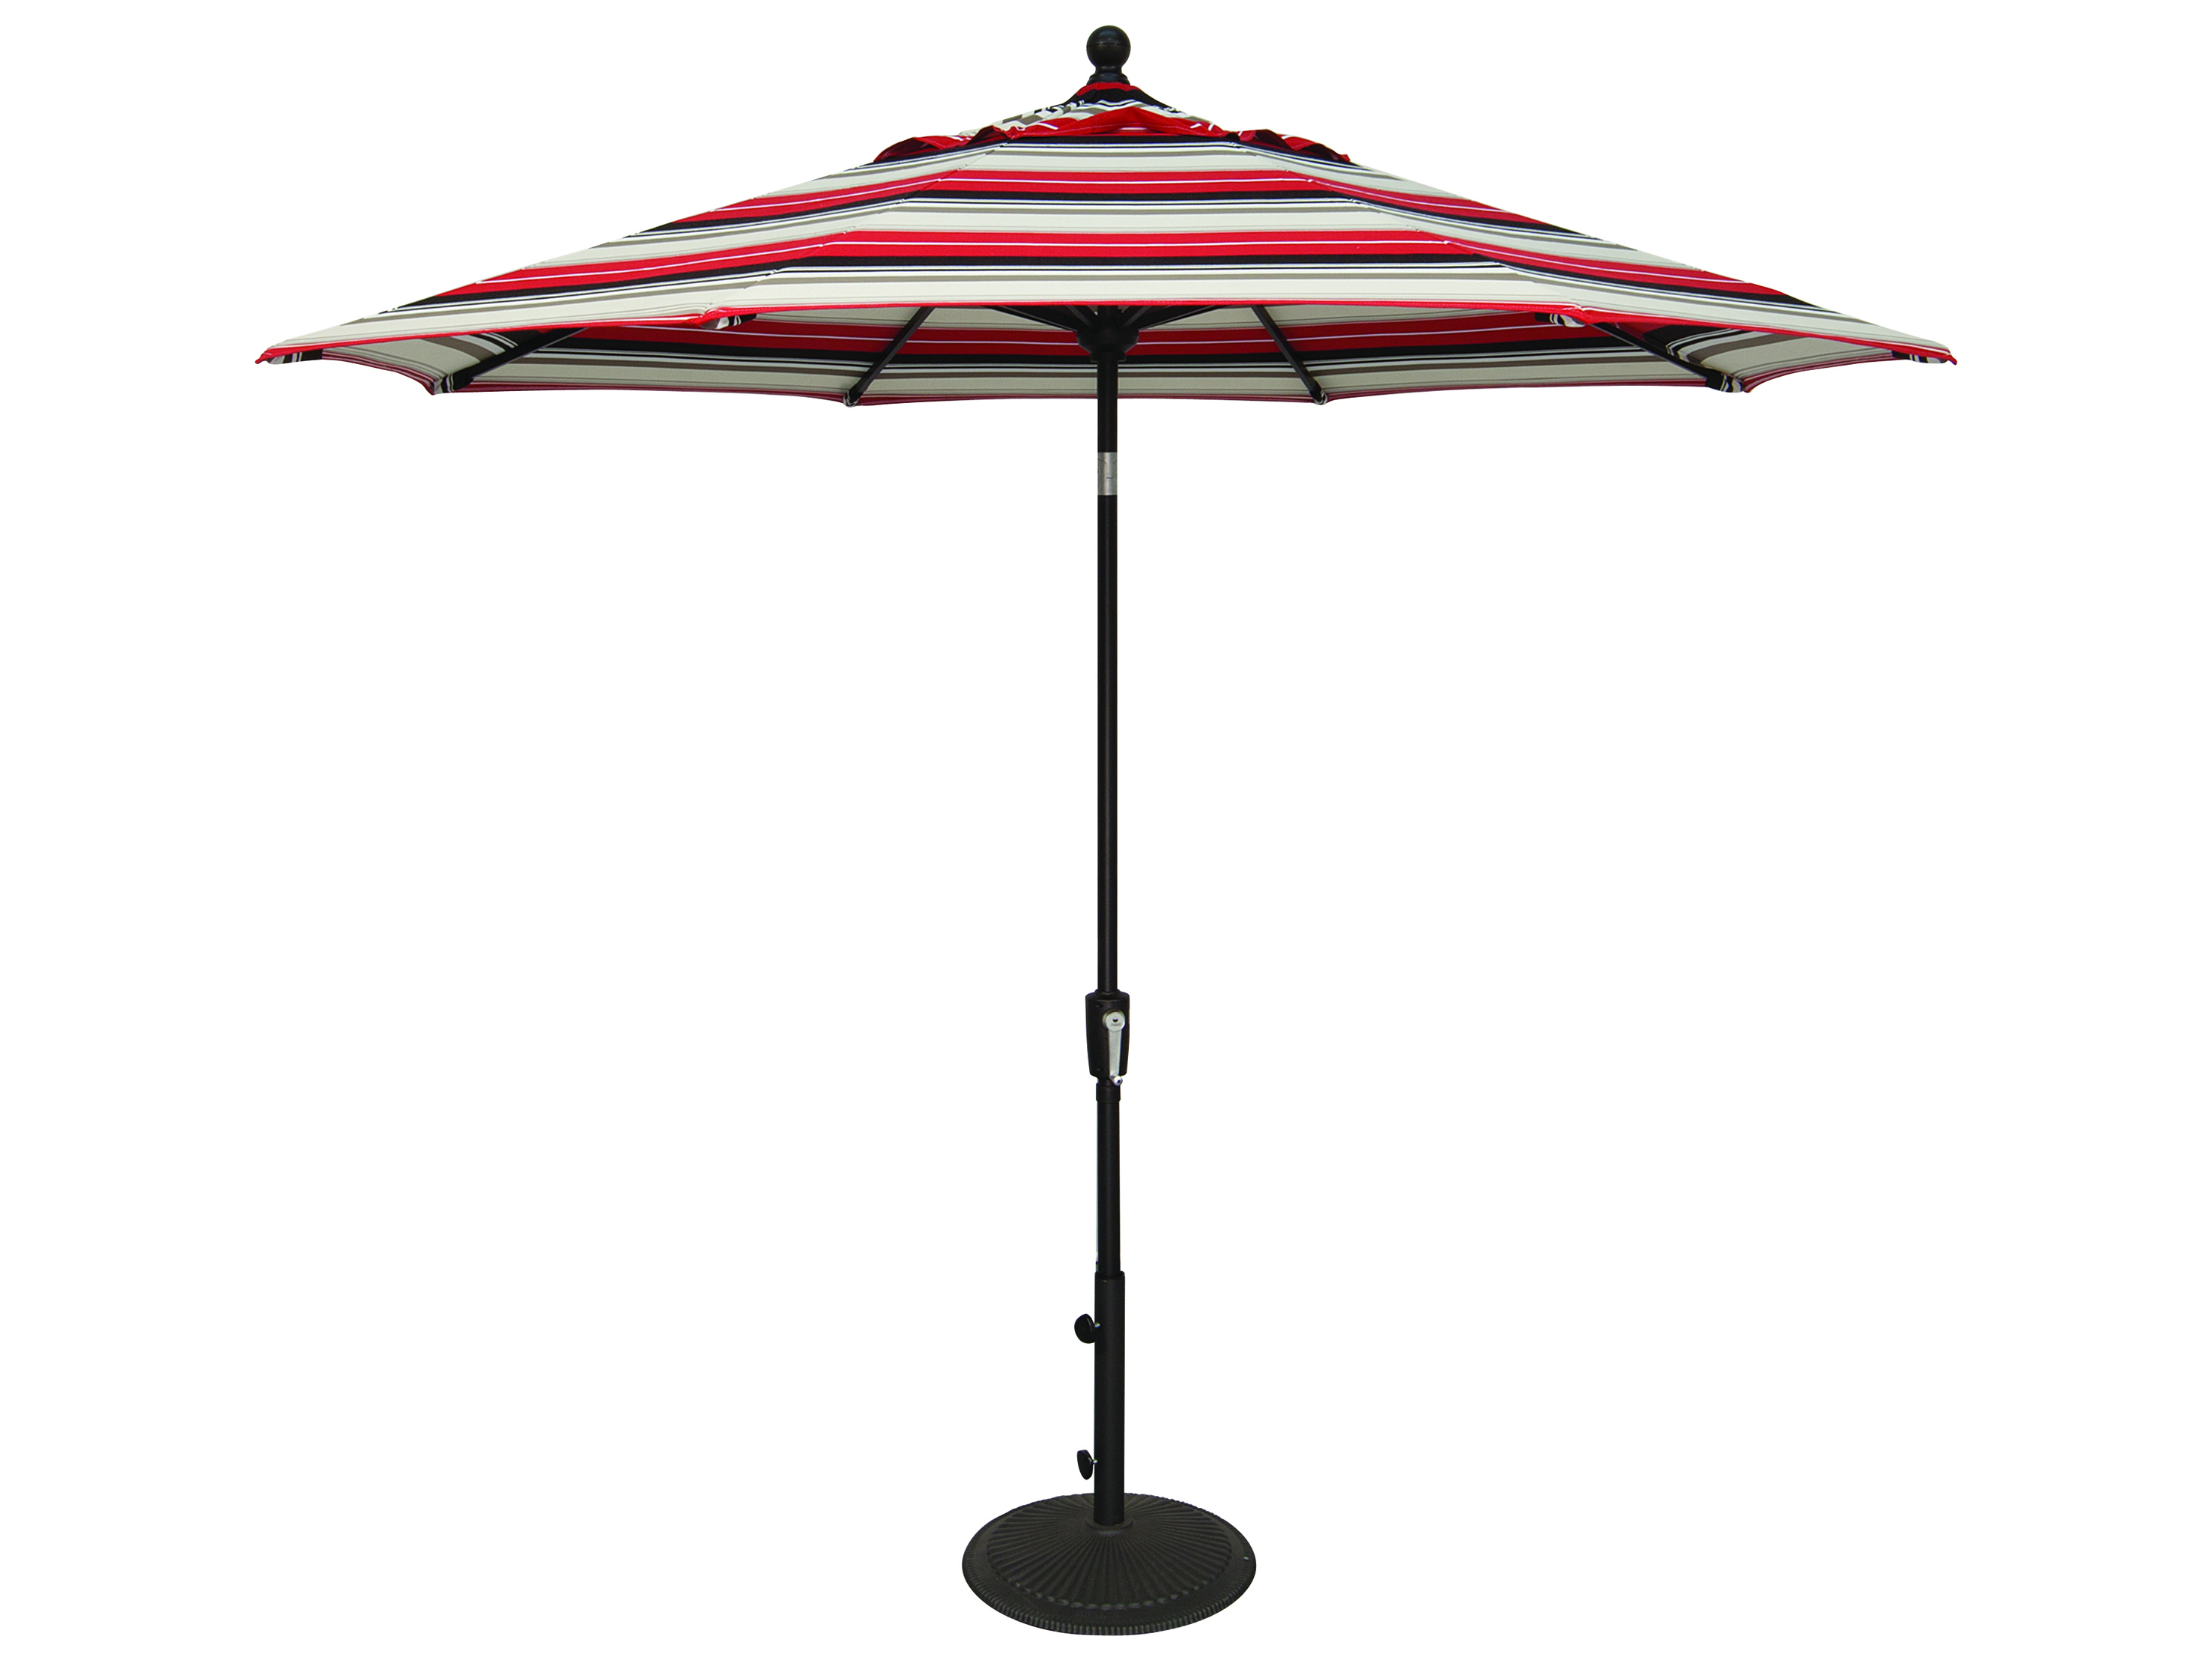 New Haven Market Umbrellas Inside Recent Treasure Garden Market Aluminum 9' Foot Wide Crank Lift Push Button Tilt  Umbrella (View 14 of 20)